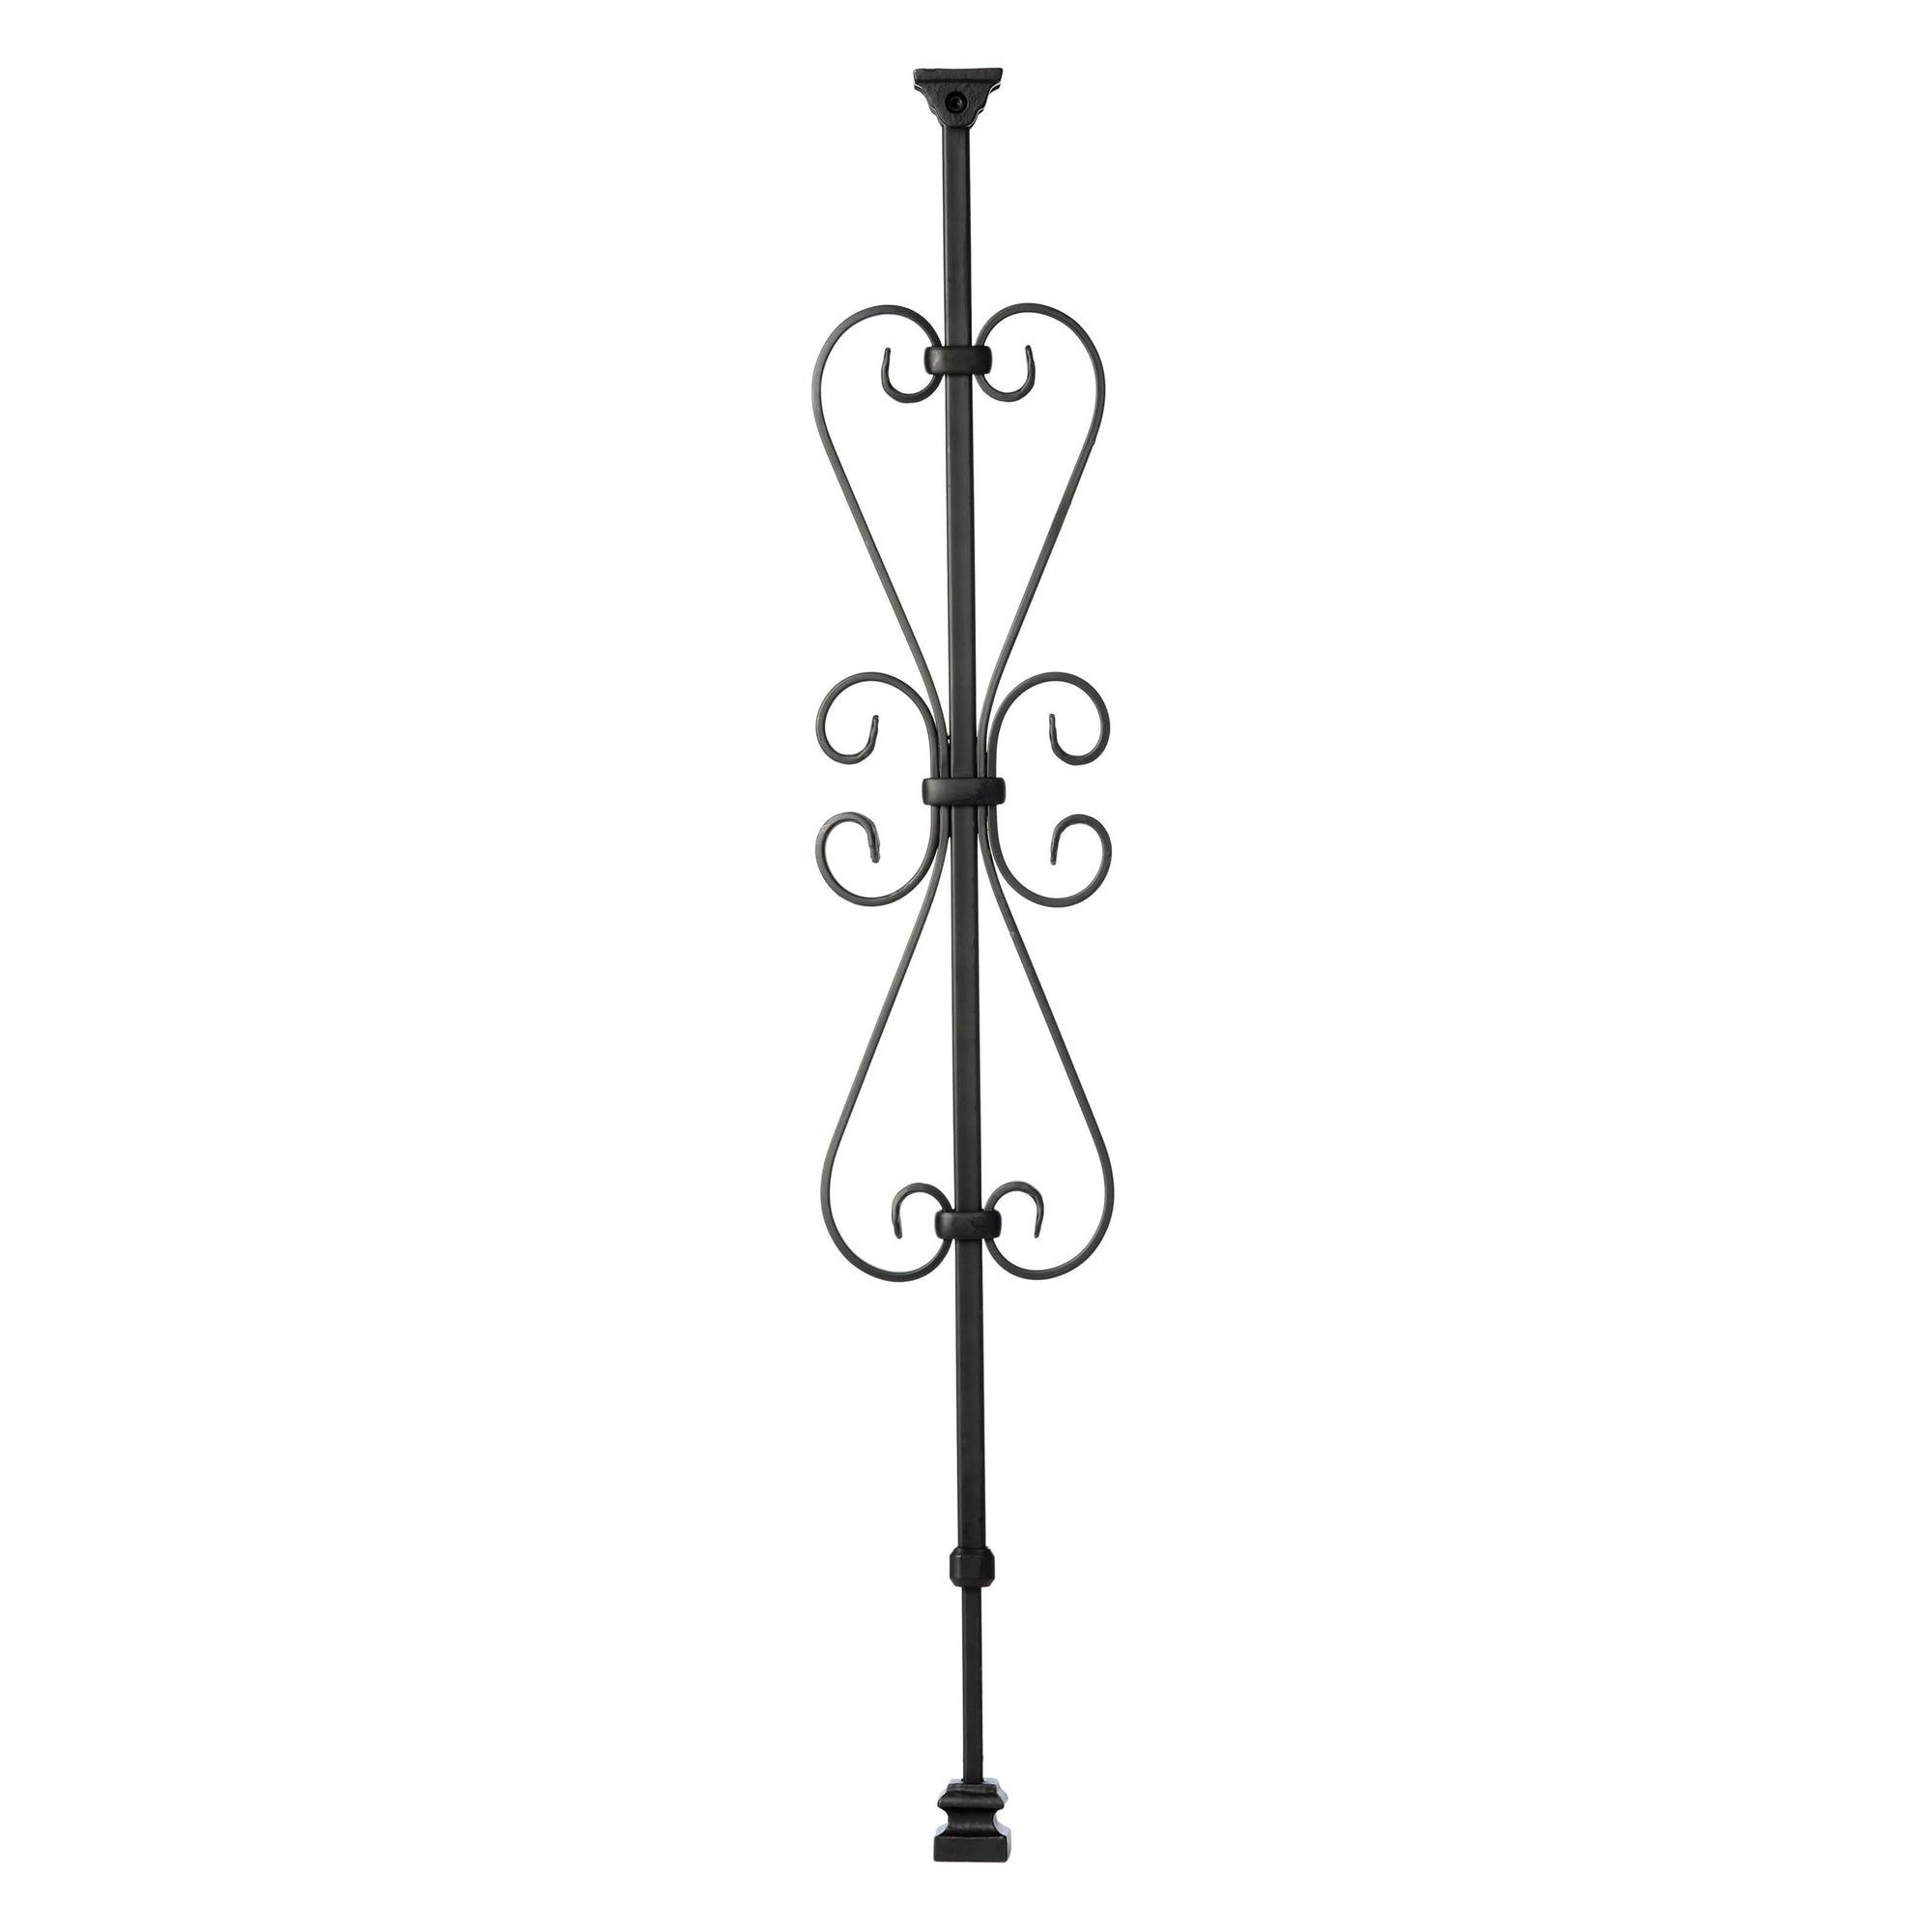 """Ole Iron Slides"" - 1/2"" Square x 29-1/2""-38""H CISHSC Heart Scroll Adjustable Iron Baluster"